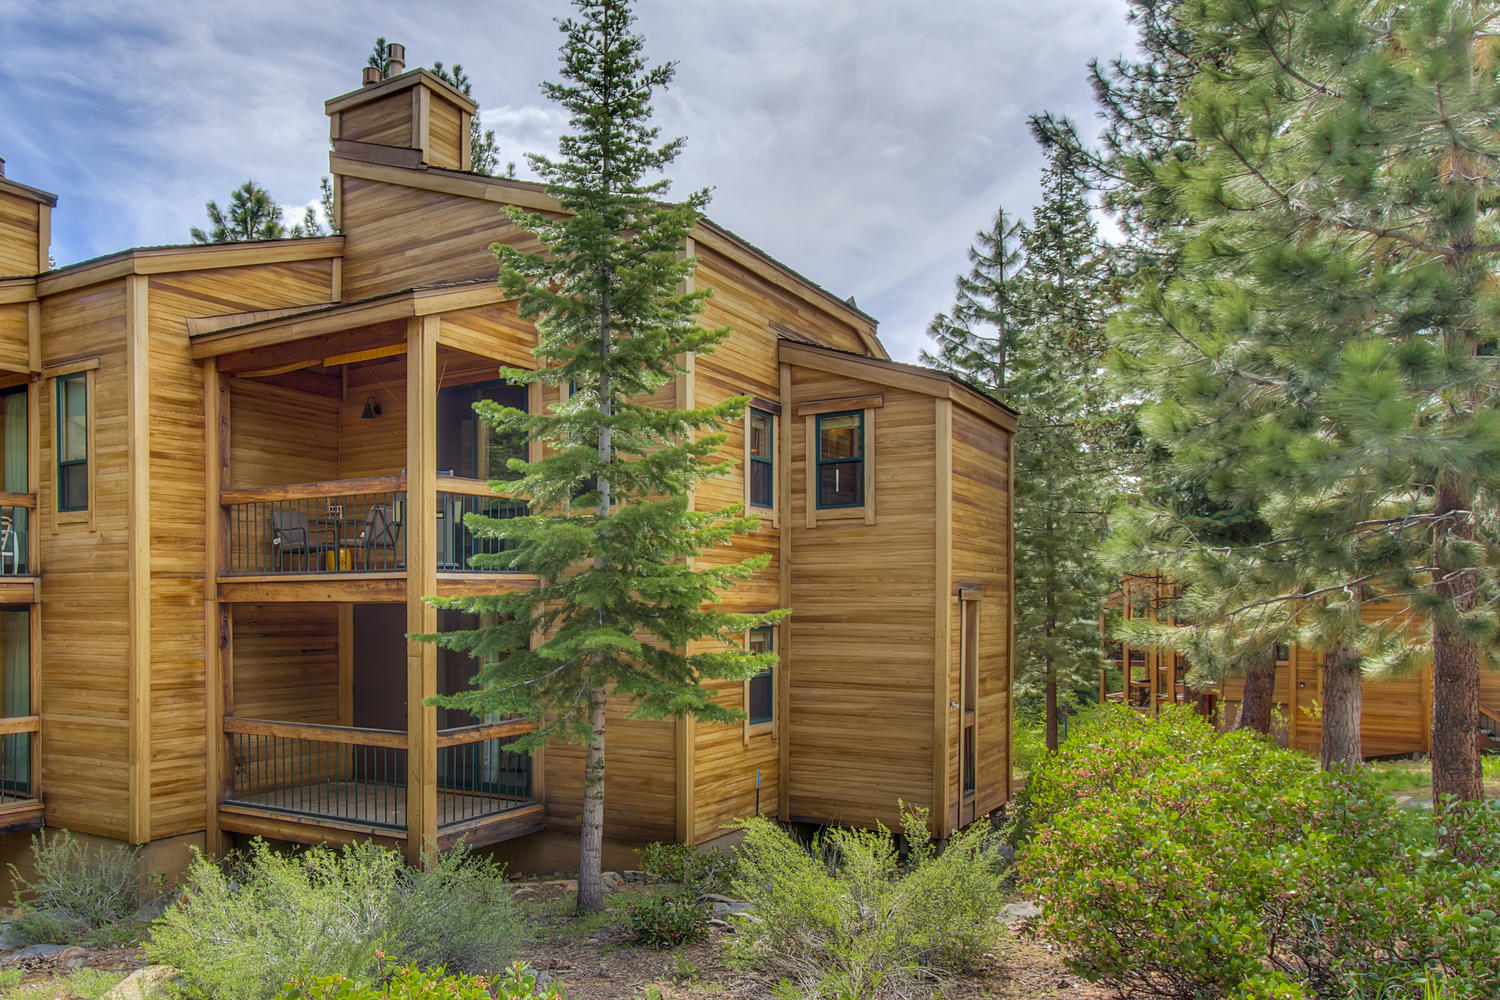 com hotel gallery us ca image property tahoma cottages amp meadows b cottage of this truckee booking